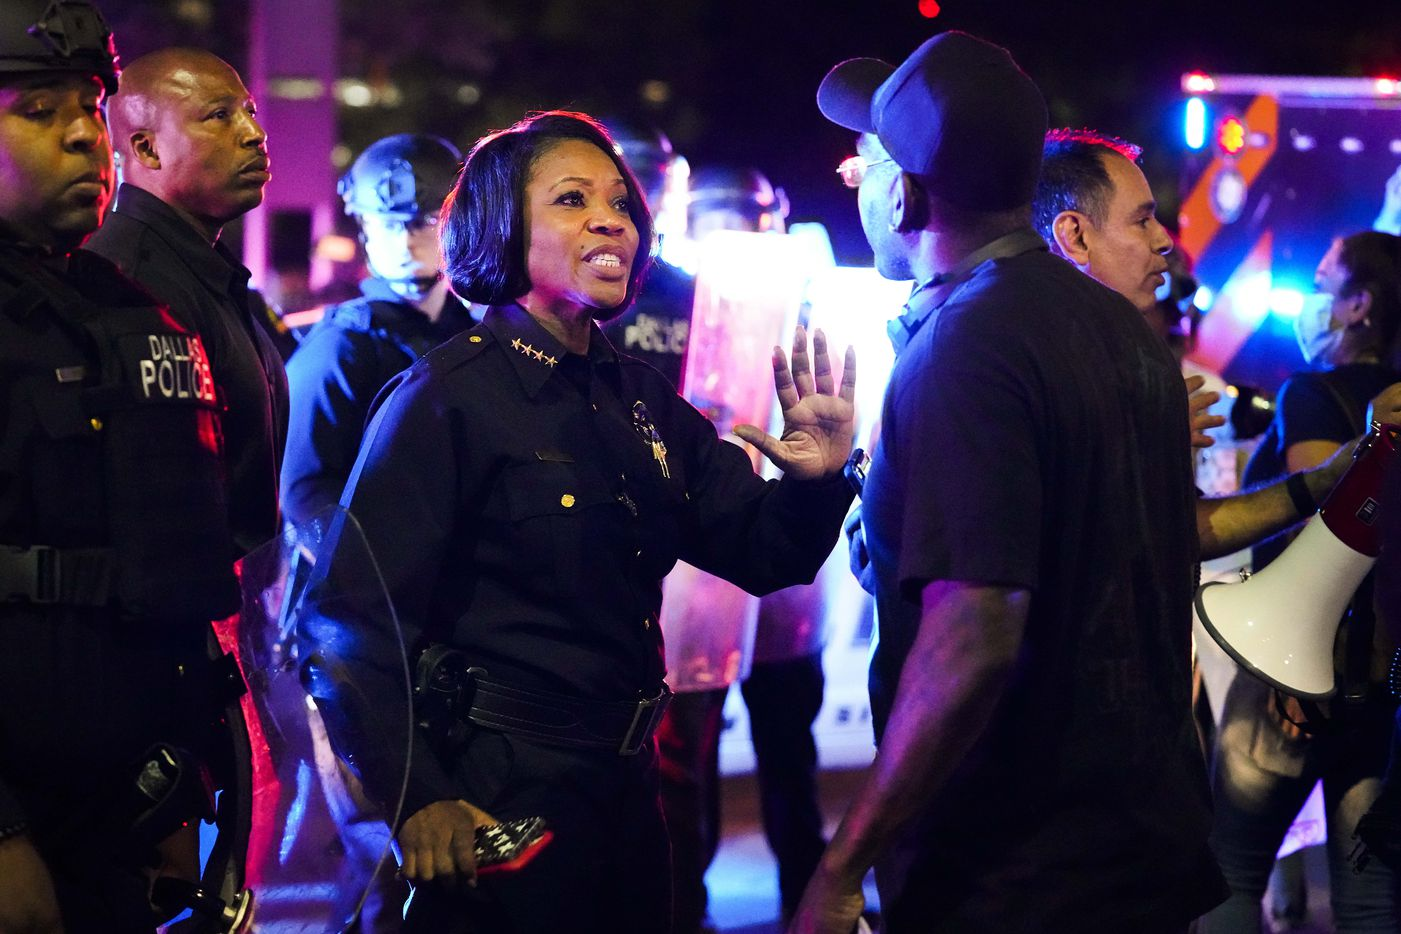 Dallas Police Chief ReneŽ Hall tries to calm a protester at the corner of Griffin and Young Streets as they march against police brutality on Friday, May 29, 2020, in Dallas.